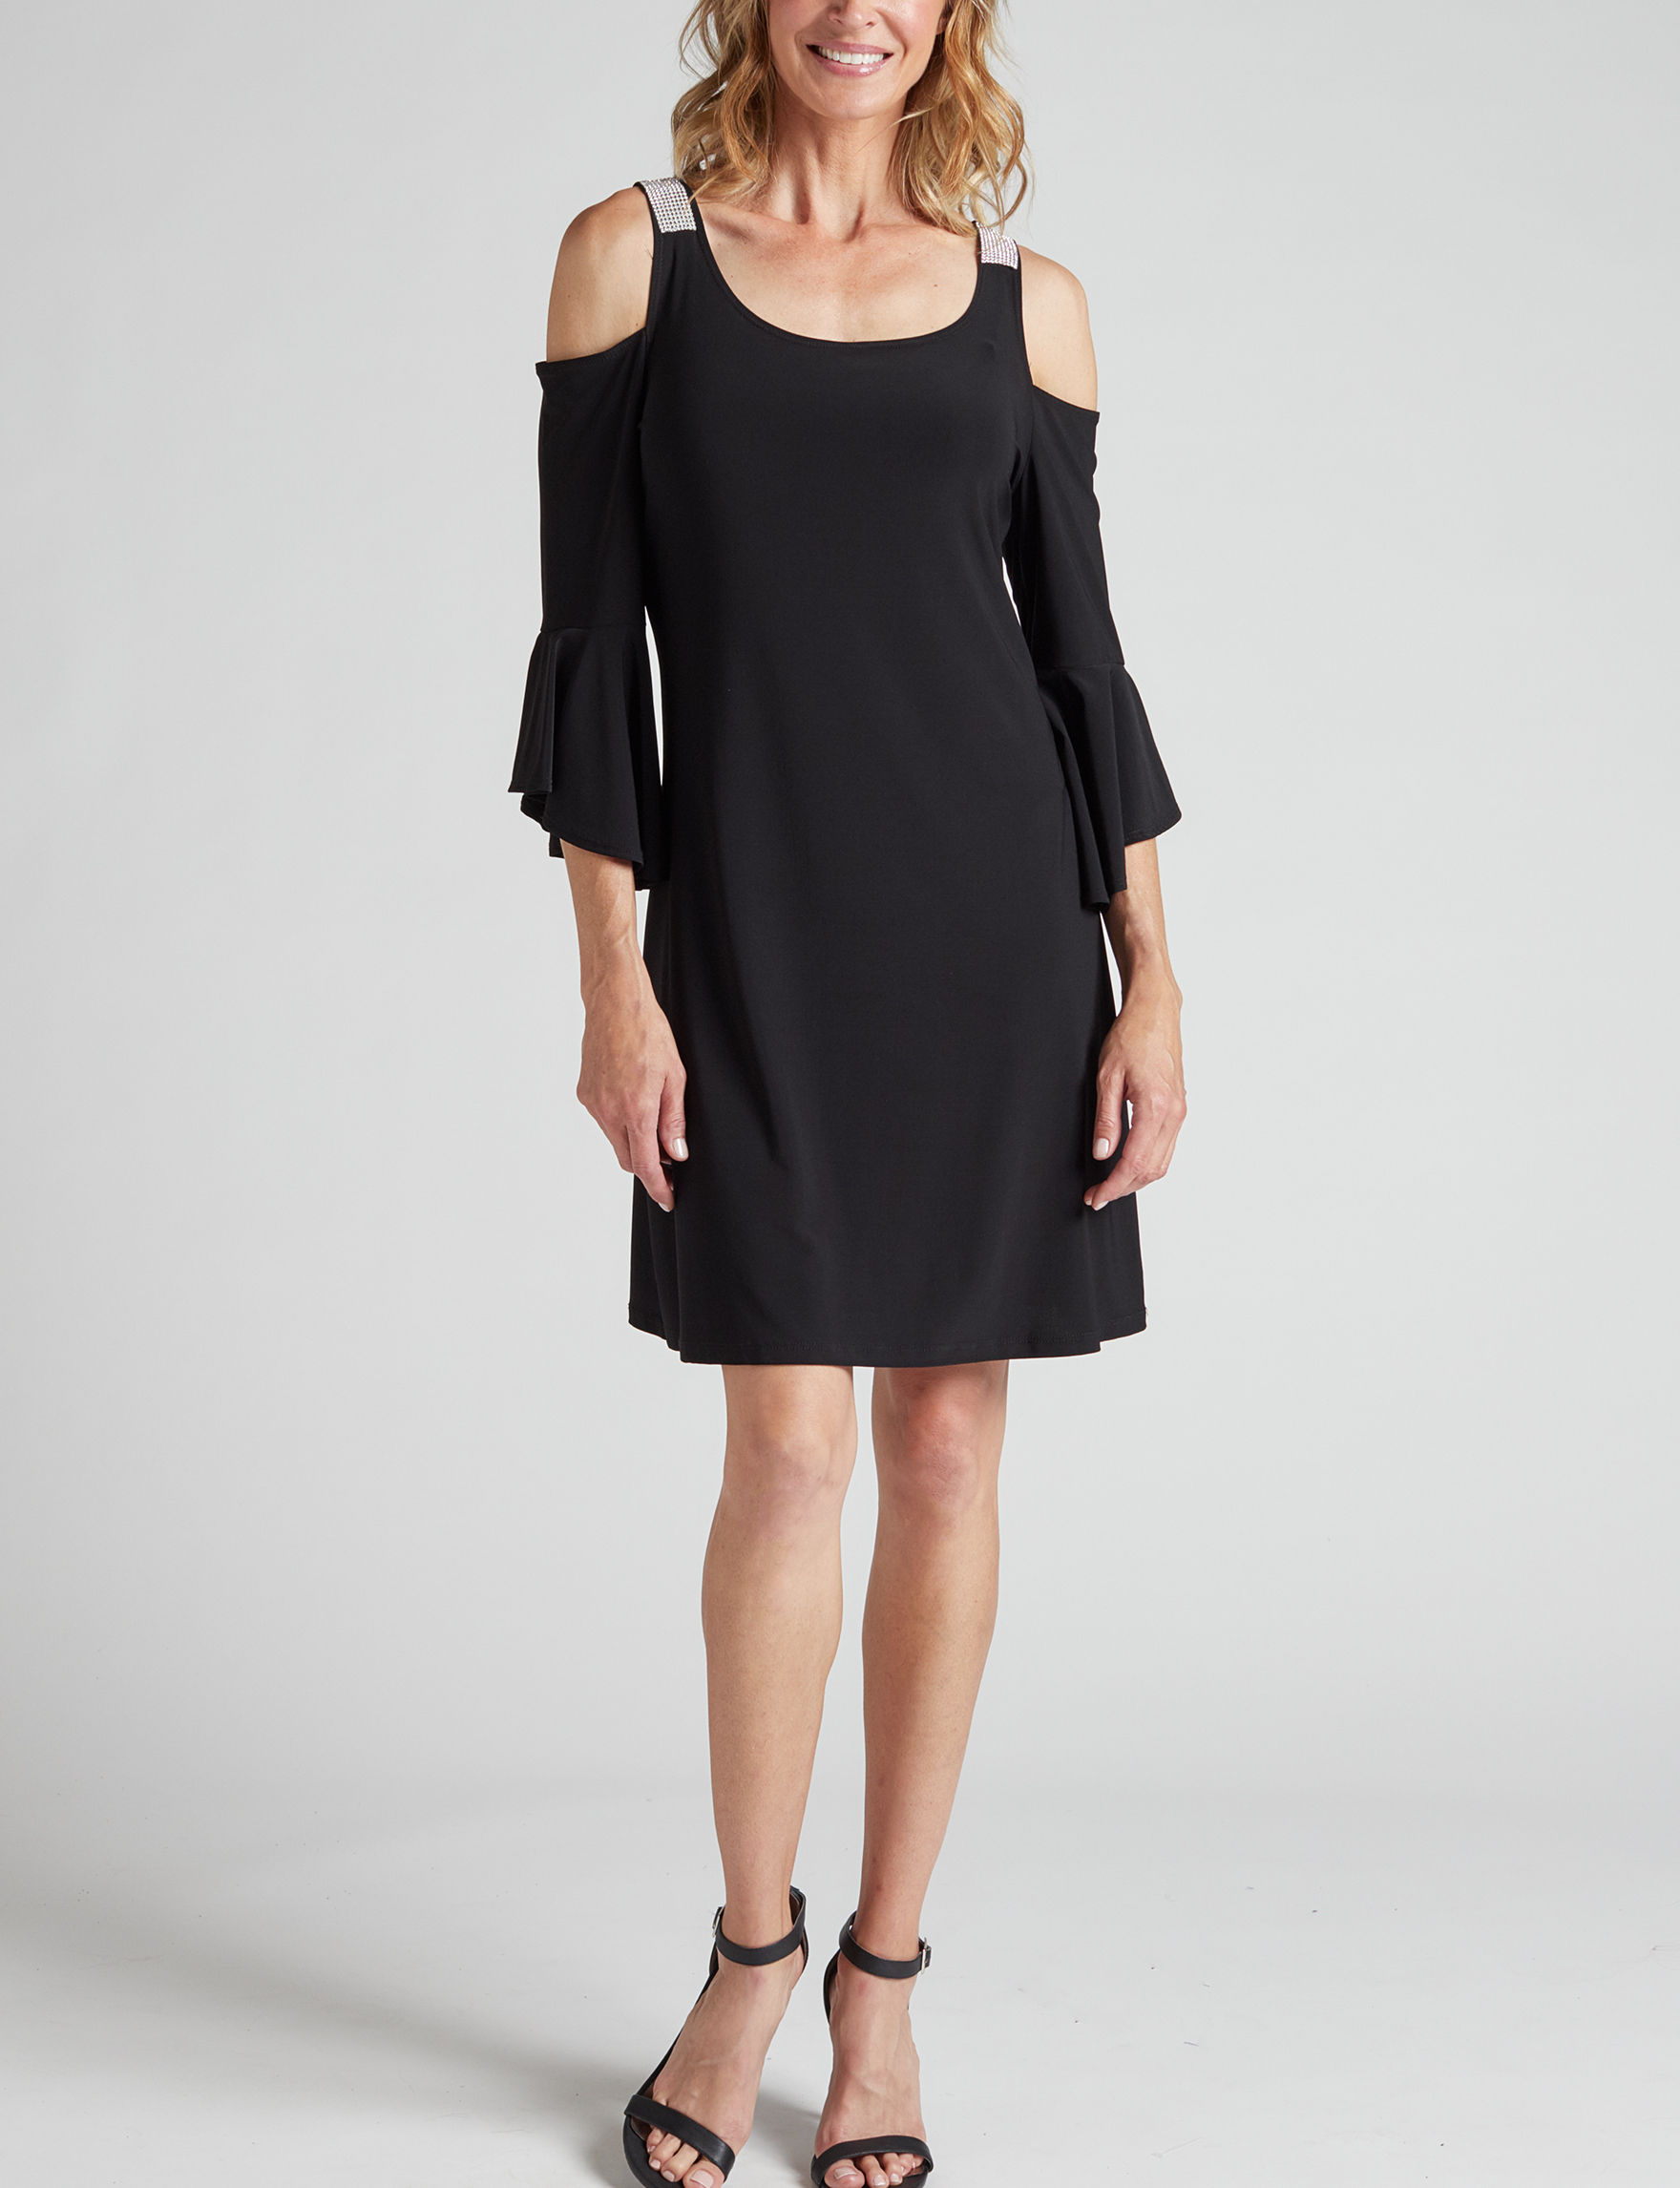 Onyx Nite Black Cocktail & Party Evening & Formal Fit & Flare Dresses